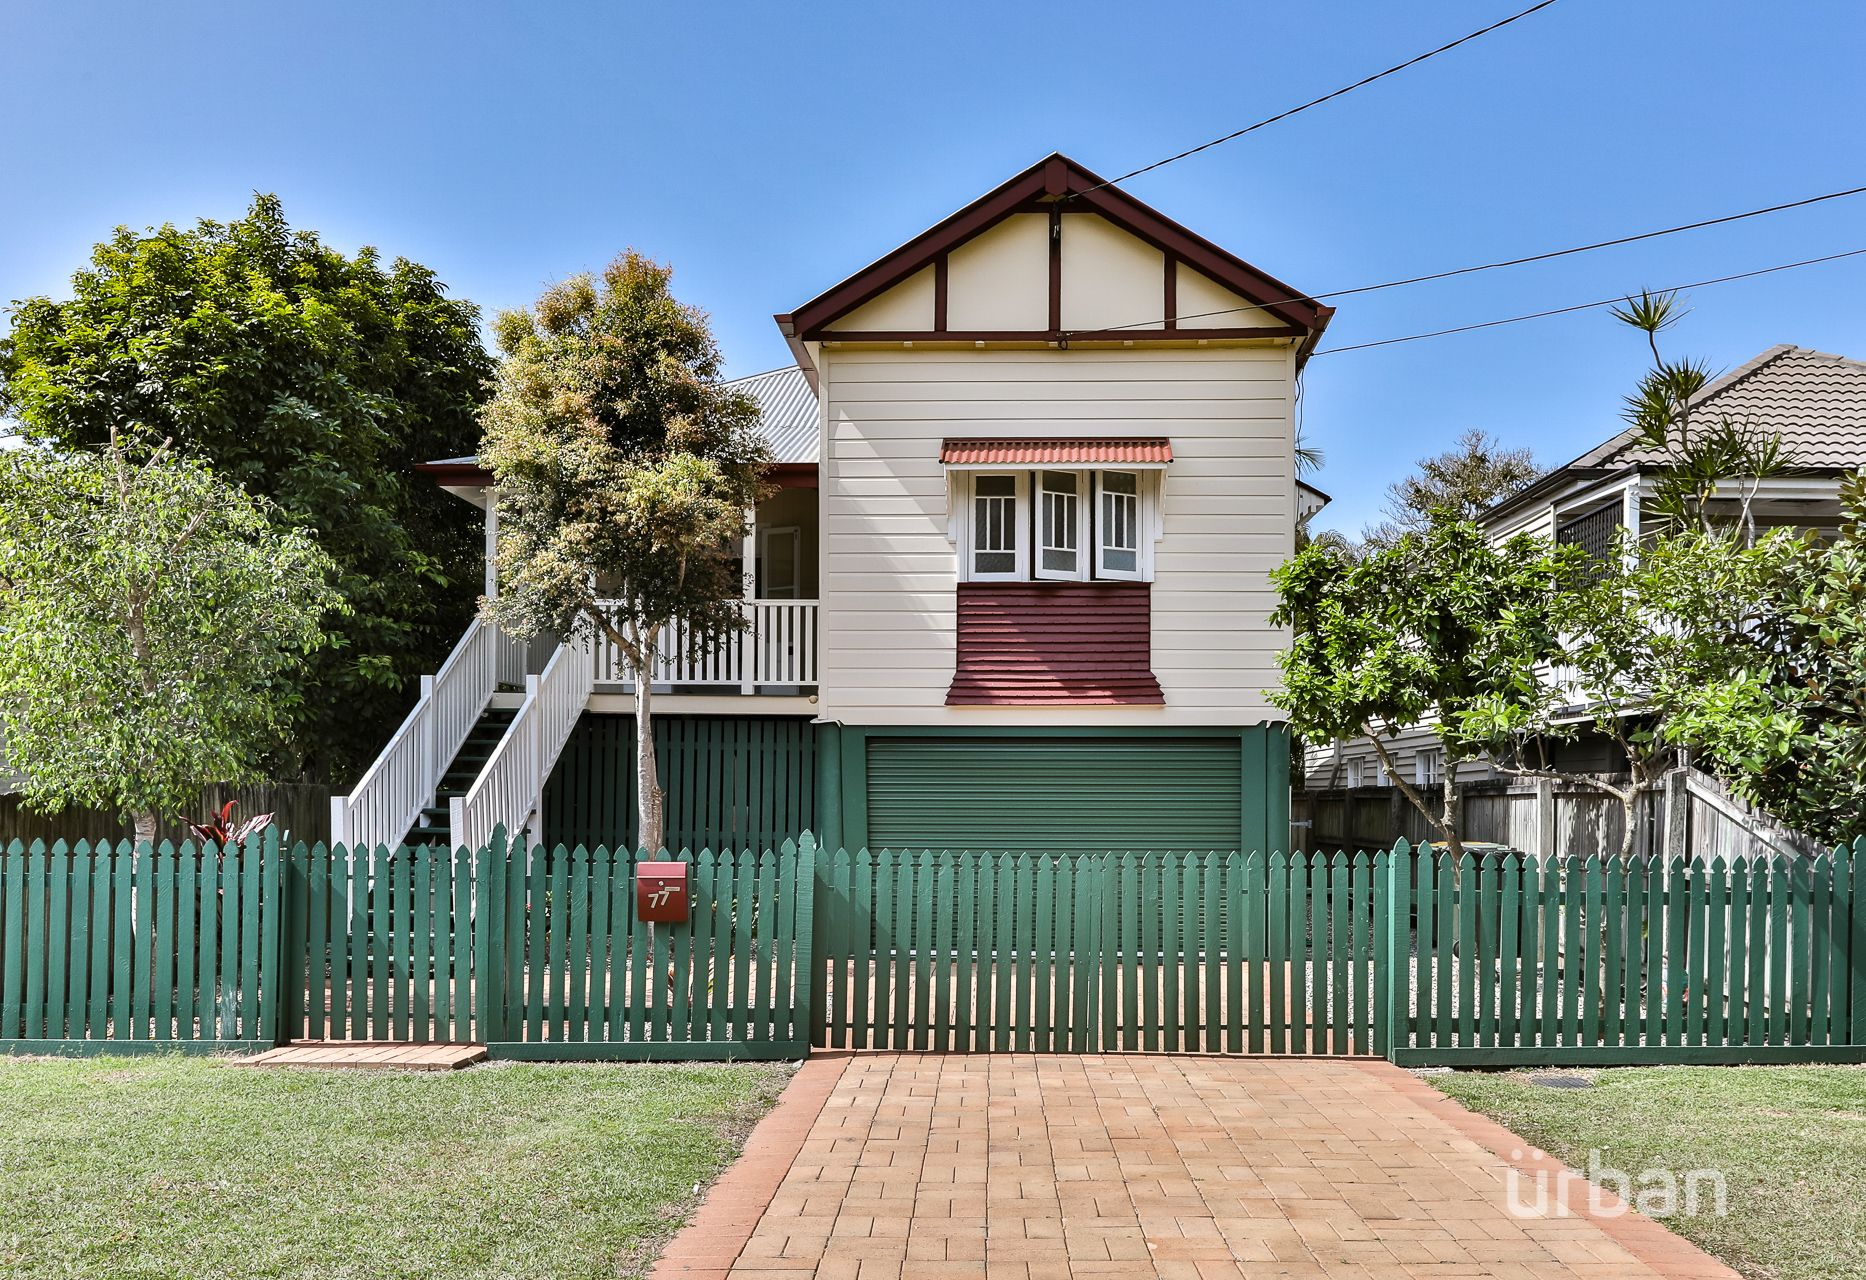 77 Fletcher Parade Bardon 4065